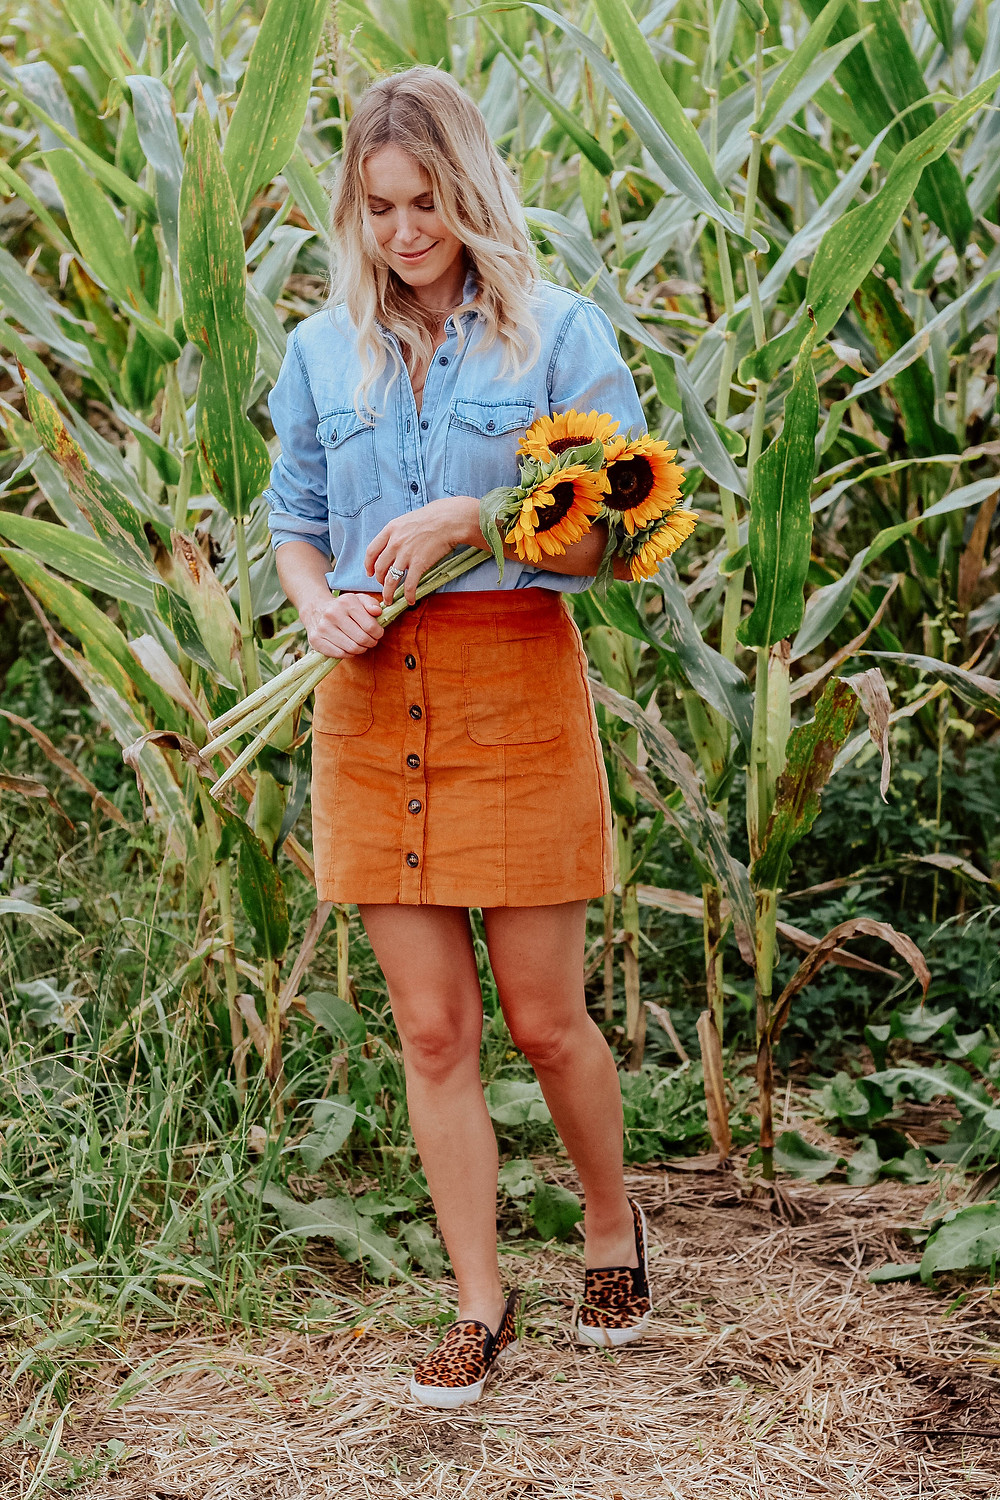 Brooke (The Tony Townie) wearing chambray blouse and corduroy skirt walks through corn field holding sunflowers.